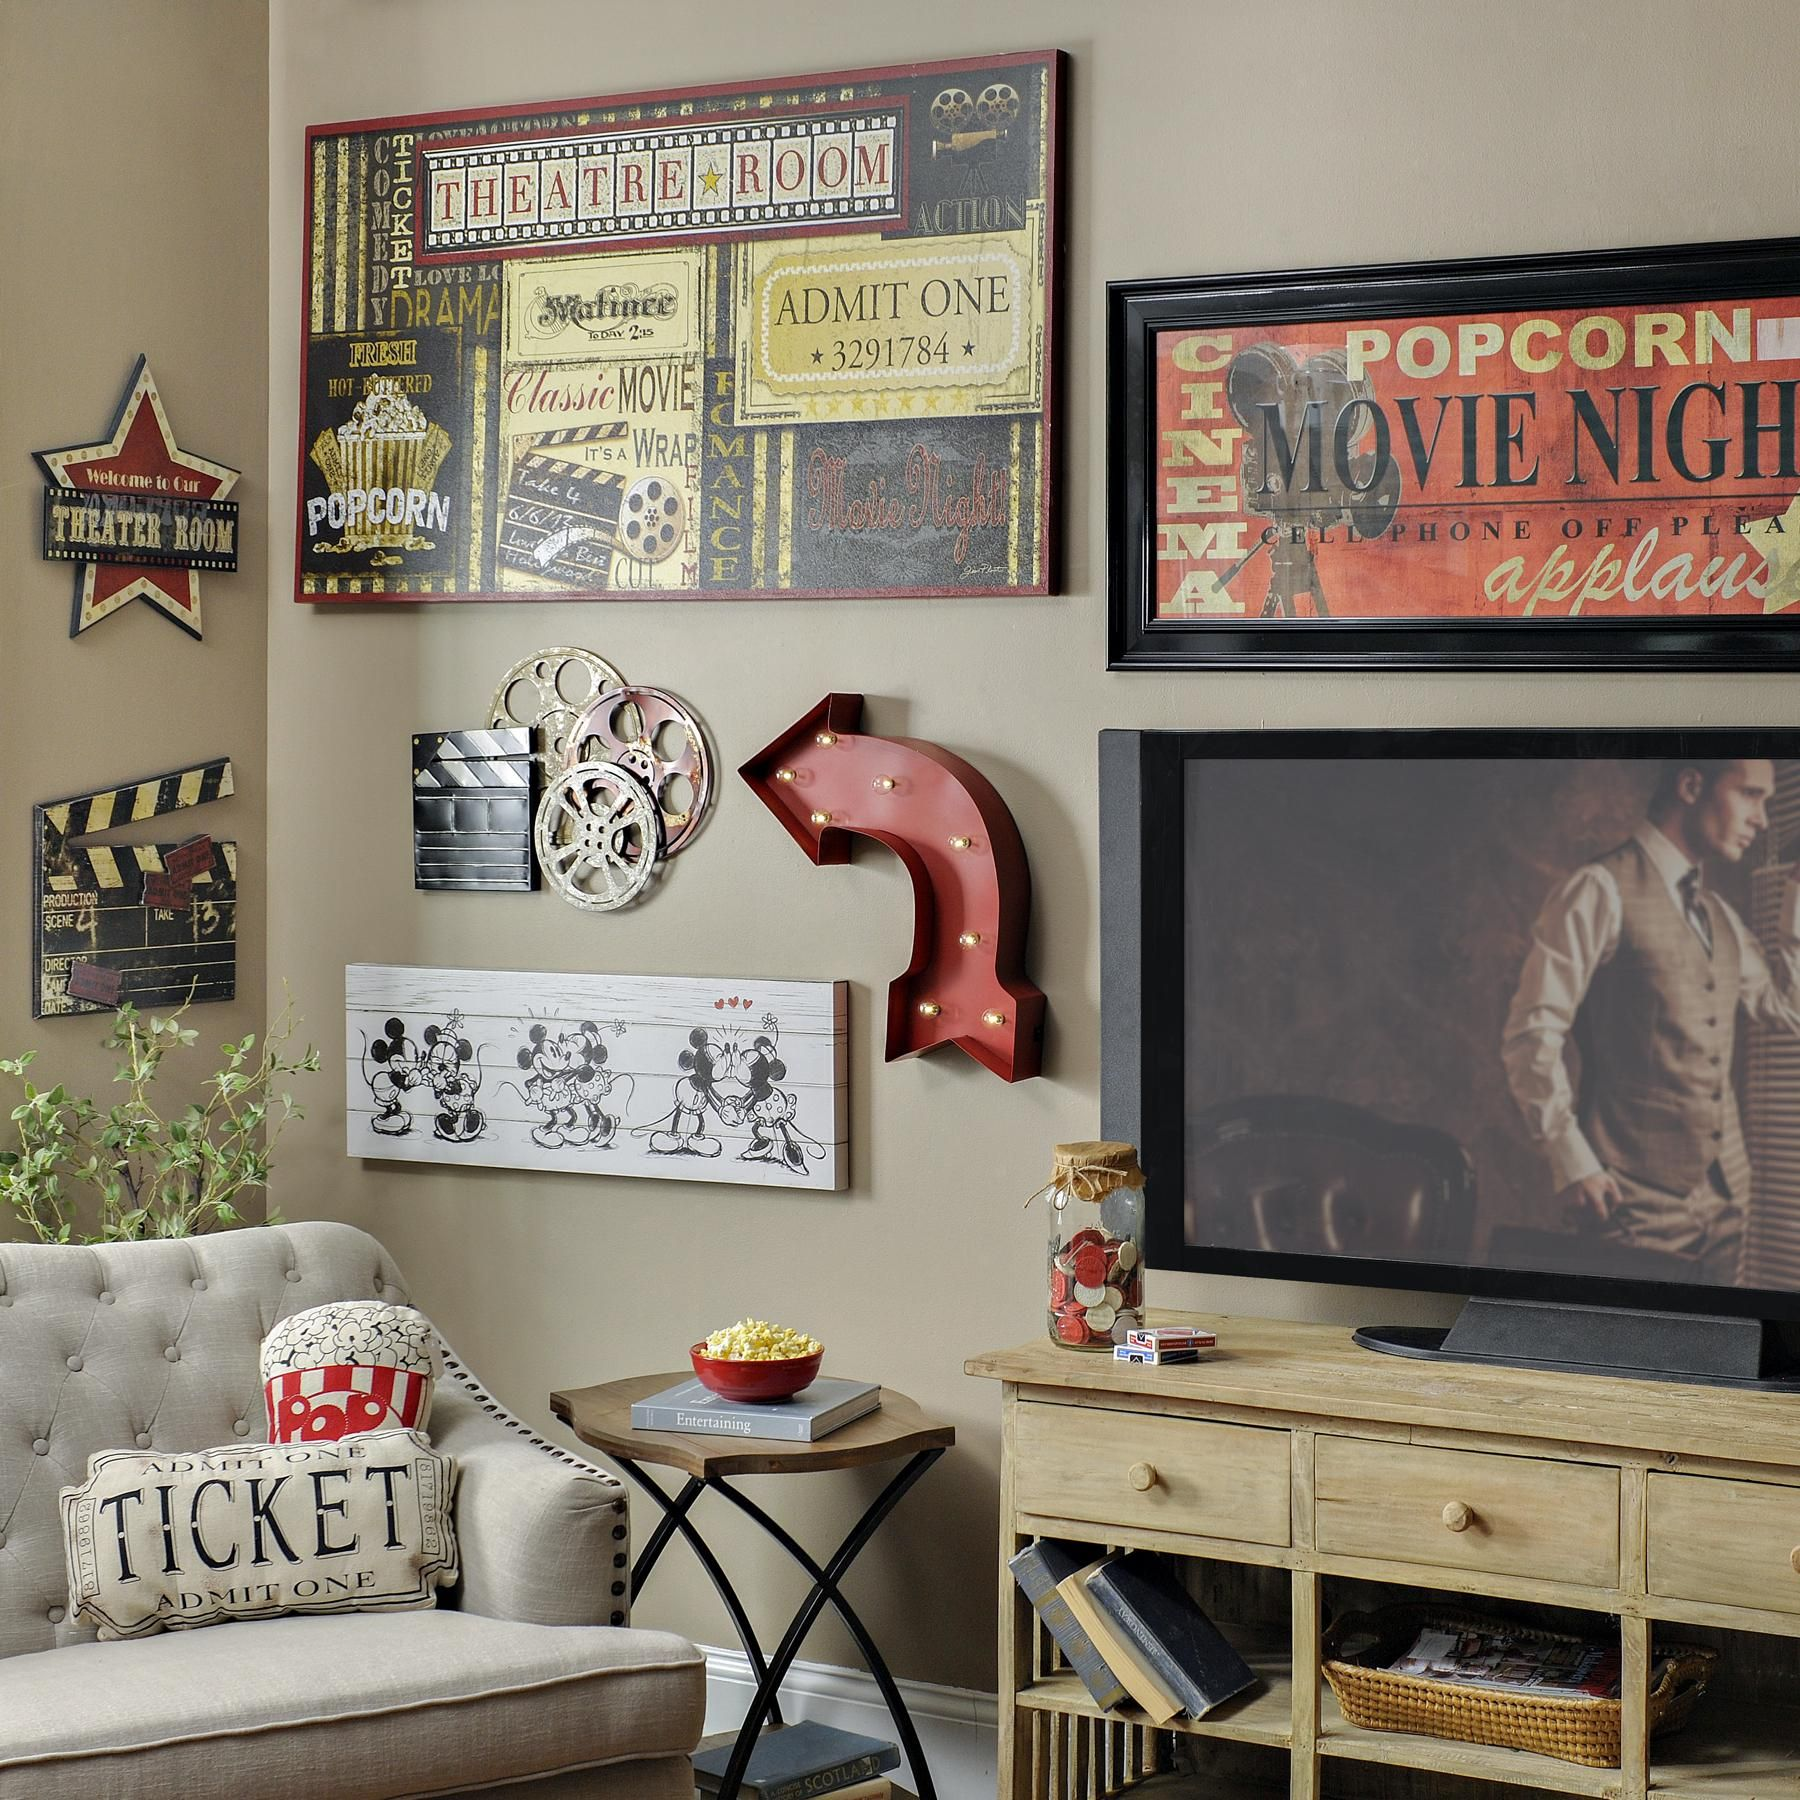 Media Room Decor film lovers, we have the movie decor you've been searching for